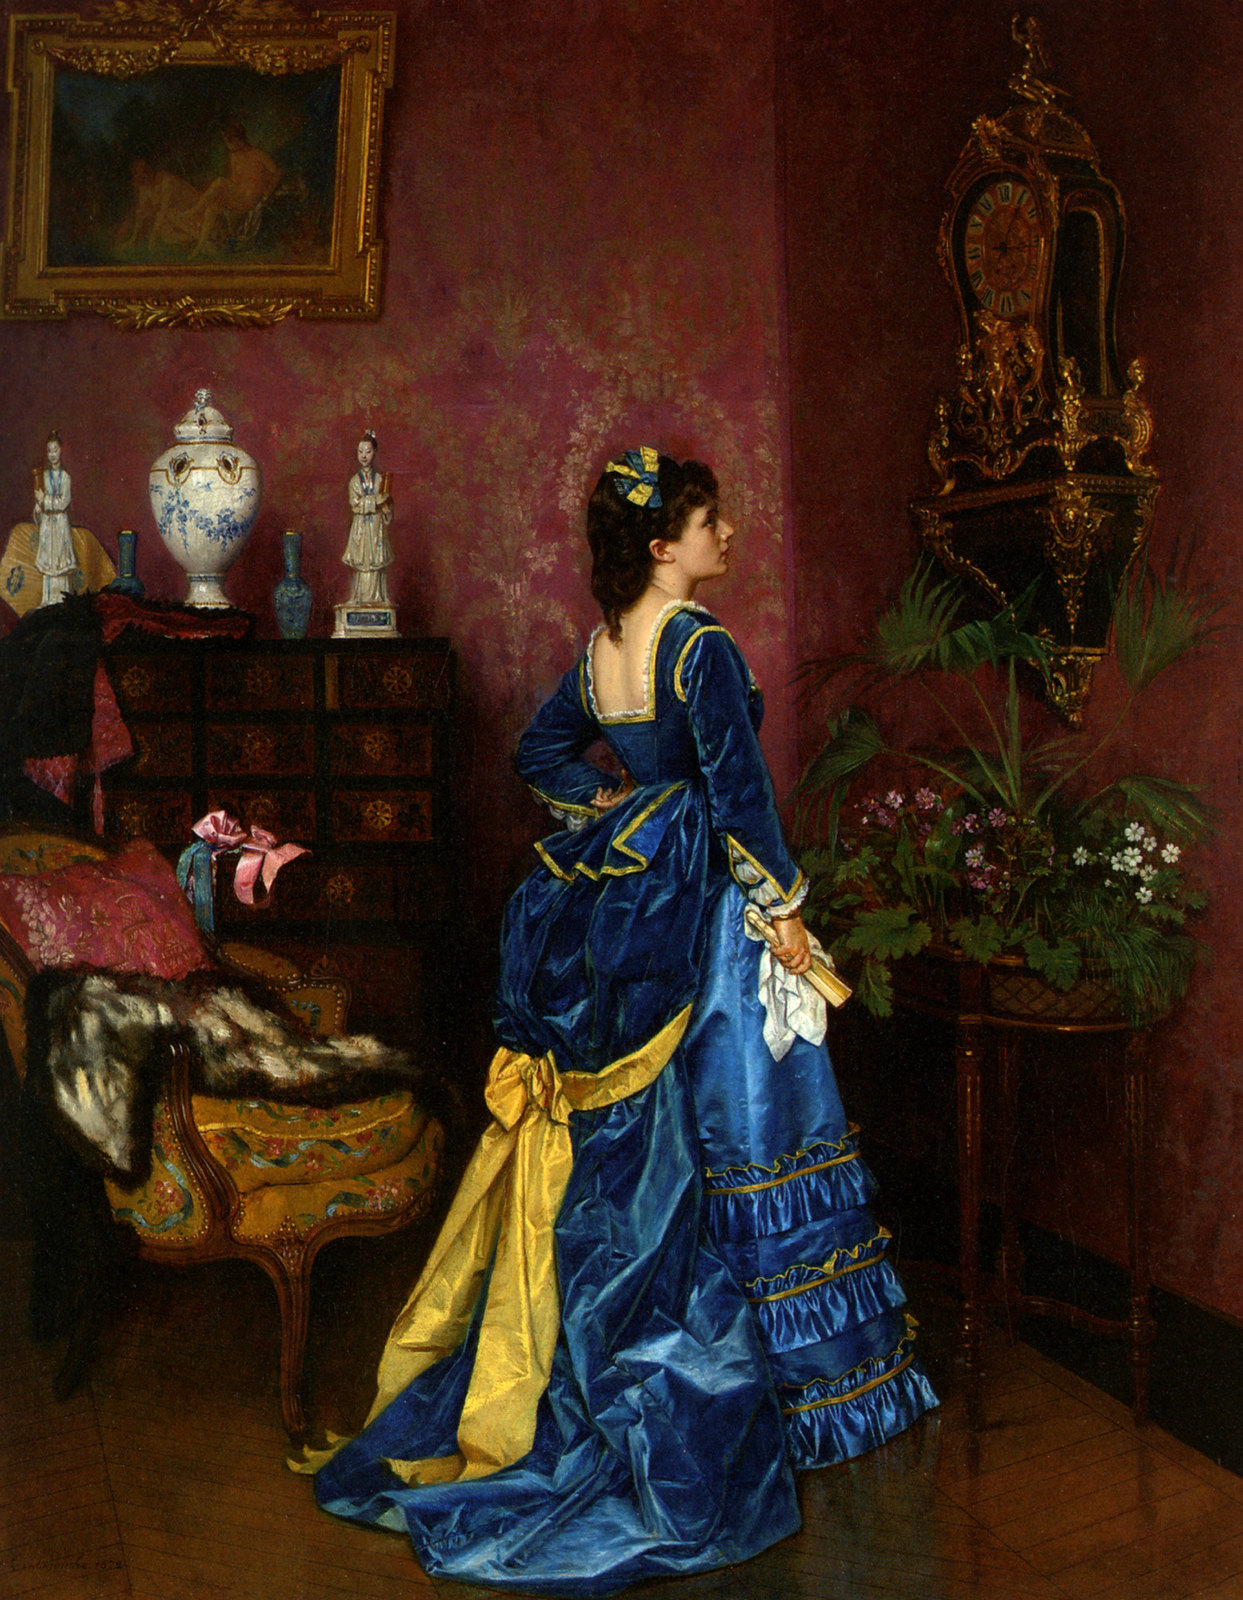 The Blue Dress by Auguste Toulmouche, 1870